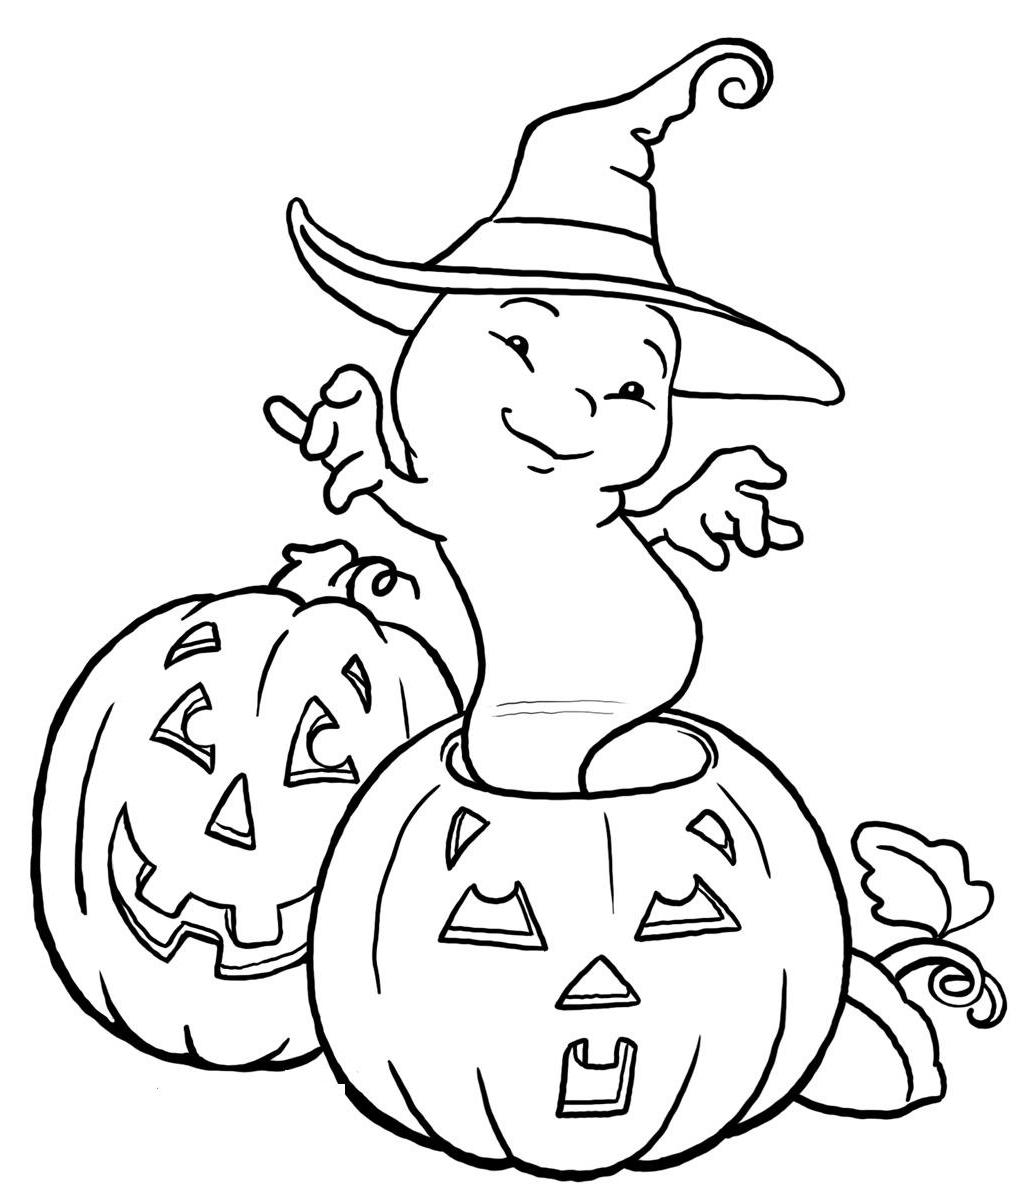 Halloween Coloring Pages: Coloring Pages: Ghosts Coloring Pages And Clip Art Free